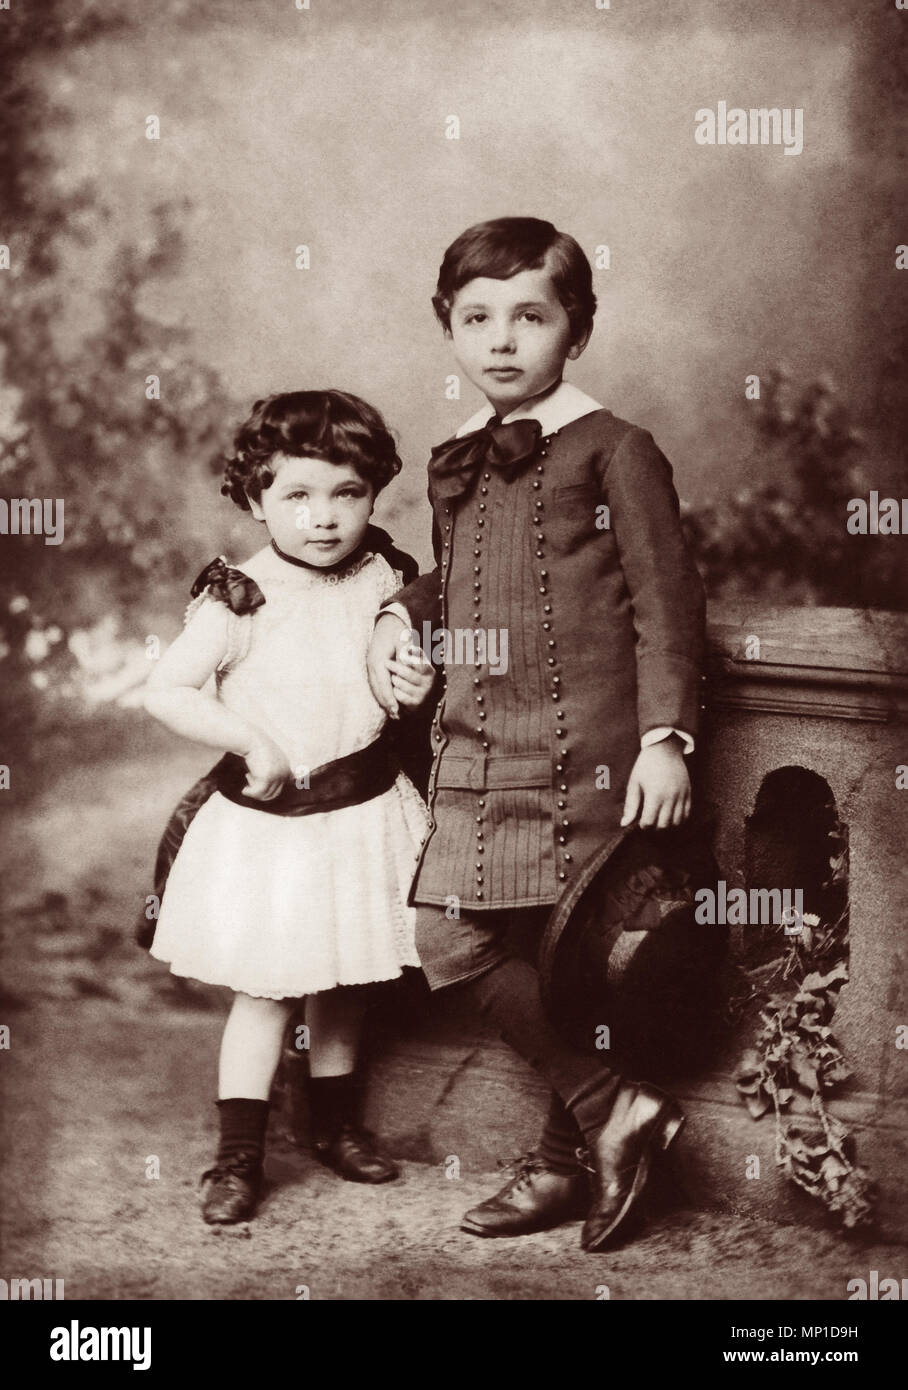 Albert Einstein (1879-1955) and his sister, Maja (1881-1951), in 1885. - Stock Image